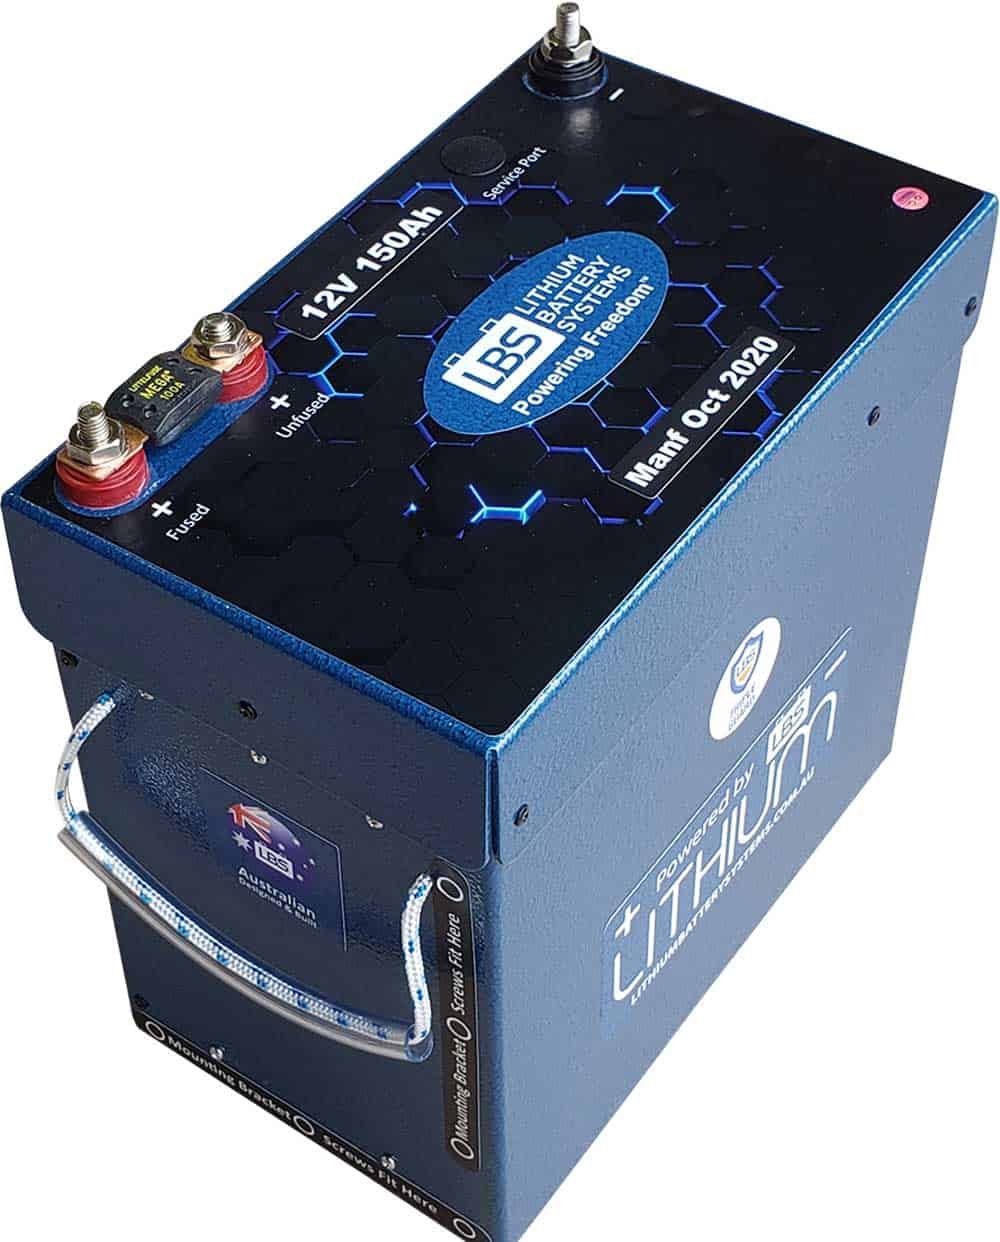 Lithium Battery Systems Side View LBS-12150C-SP